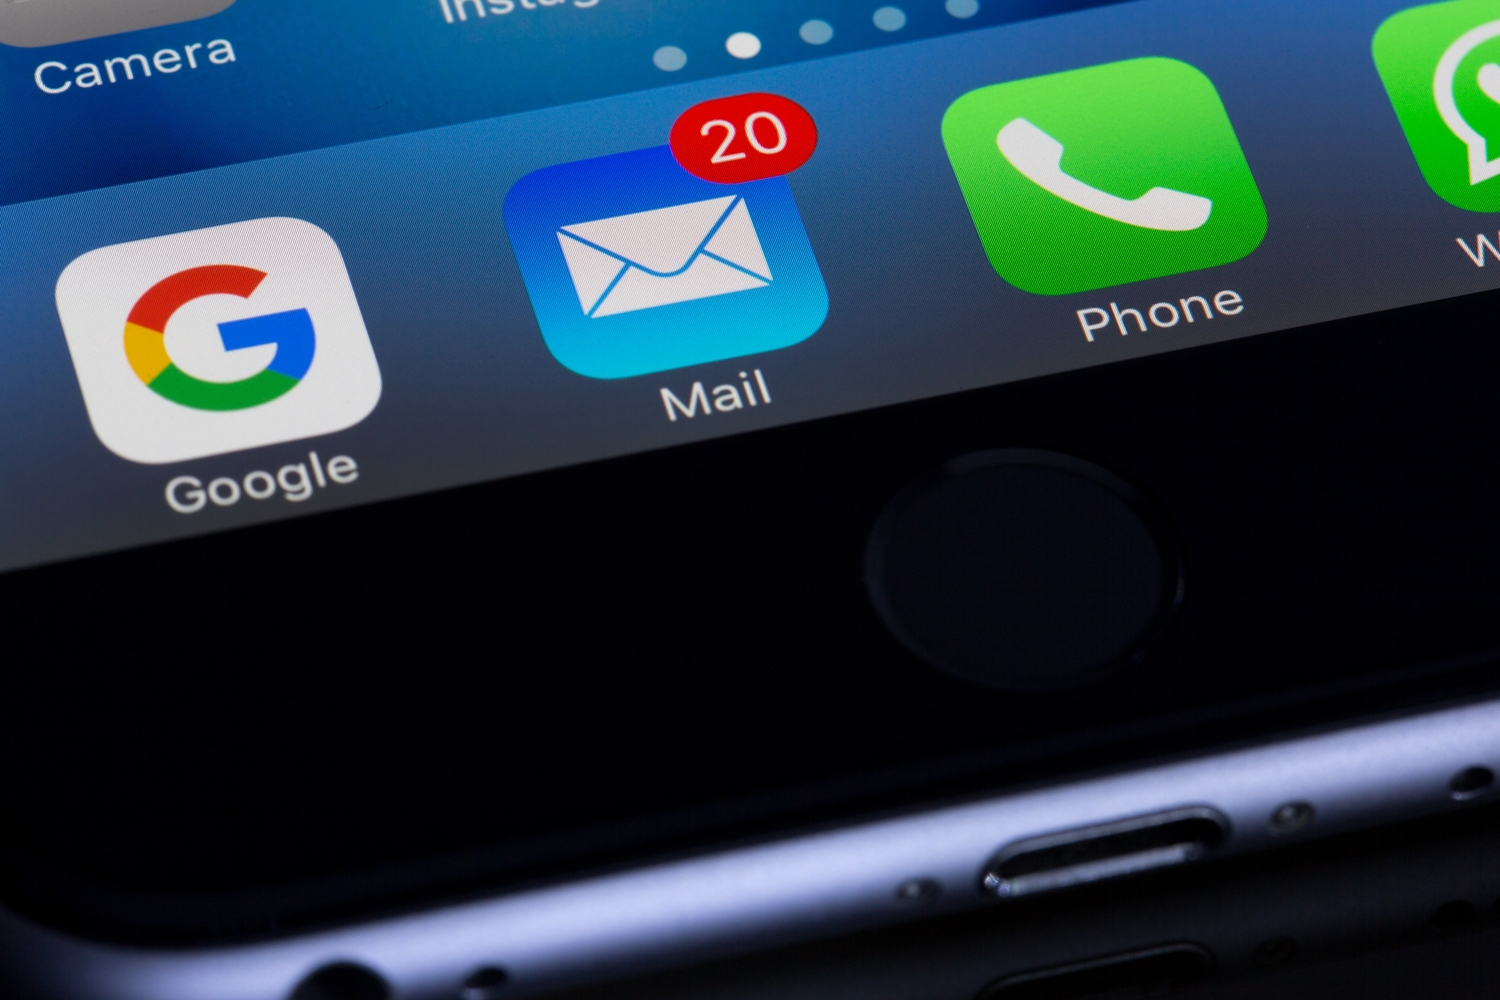 Dig up any old email in your inbox. Even if it's in the trash.